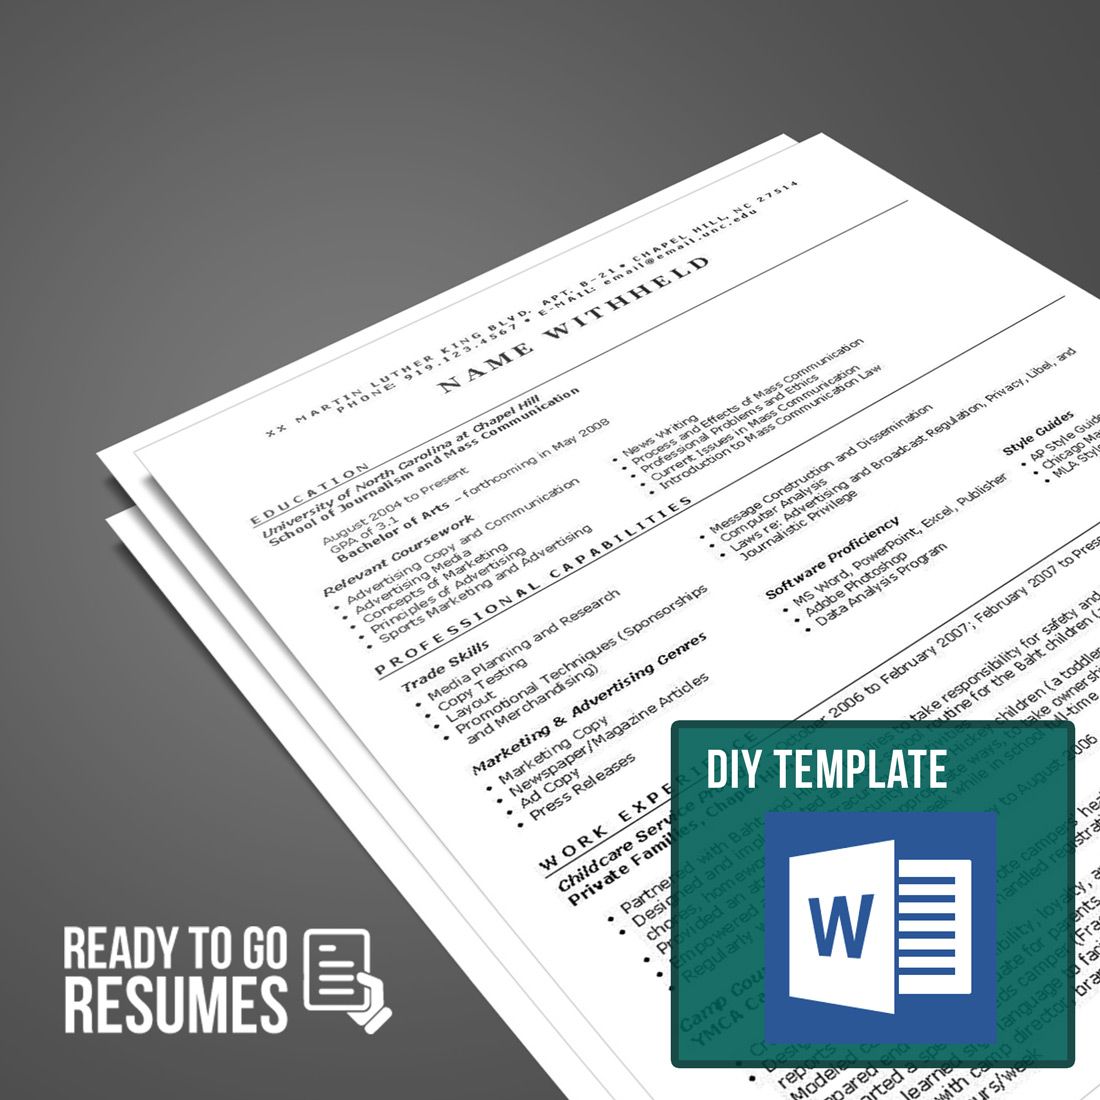 Government Jobs Upload Resume Federal Resume Diy Template Ready To Go Resumes